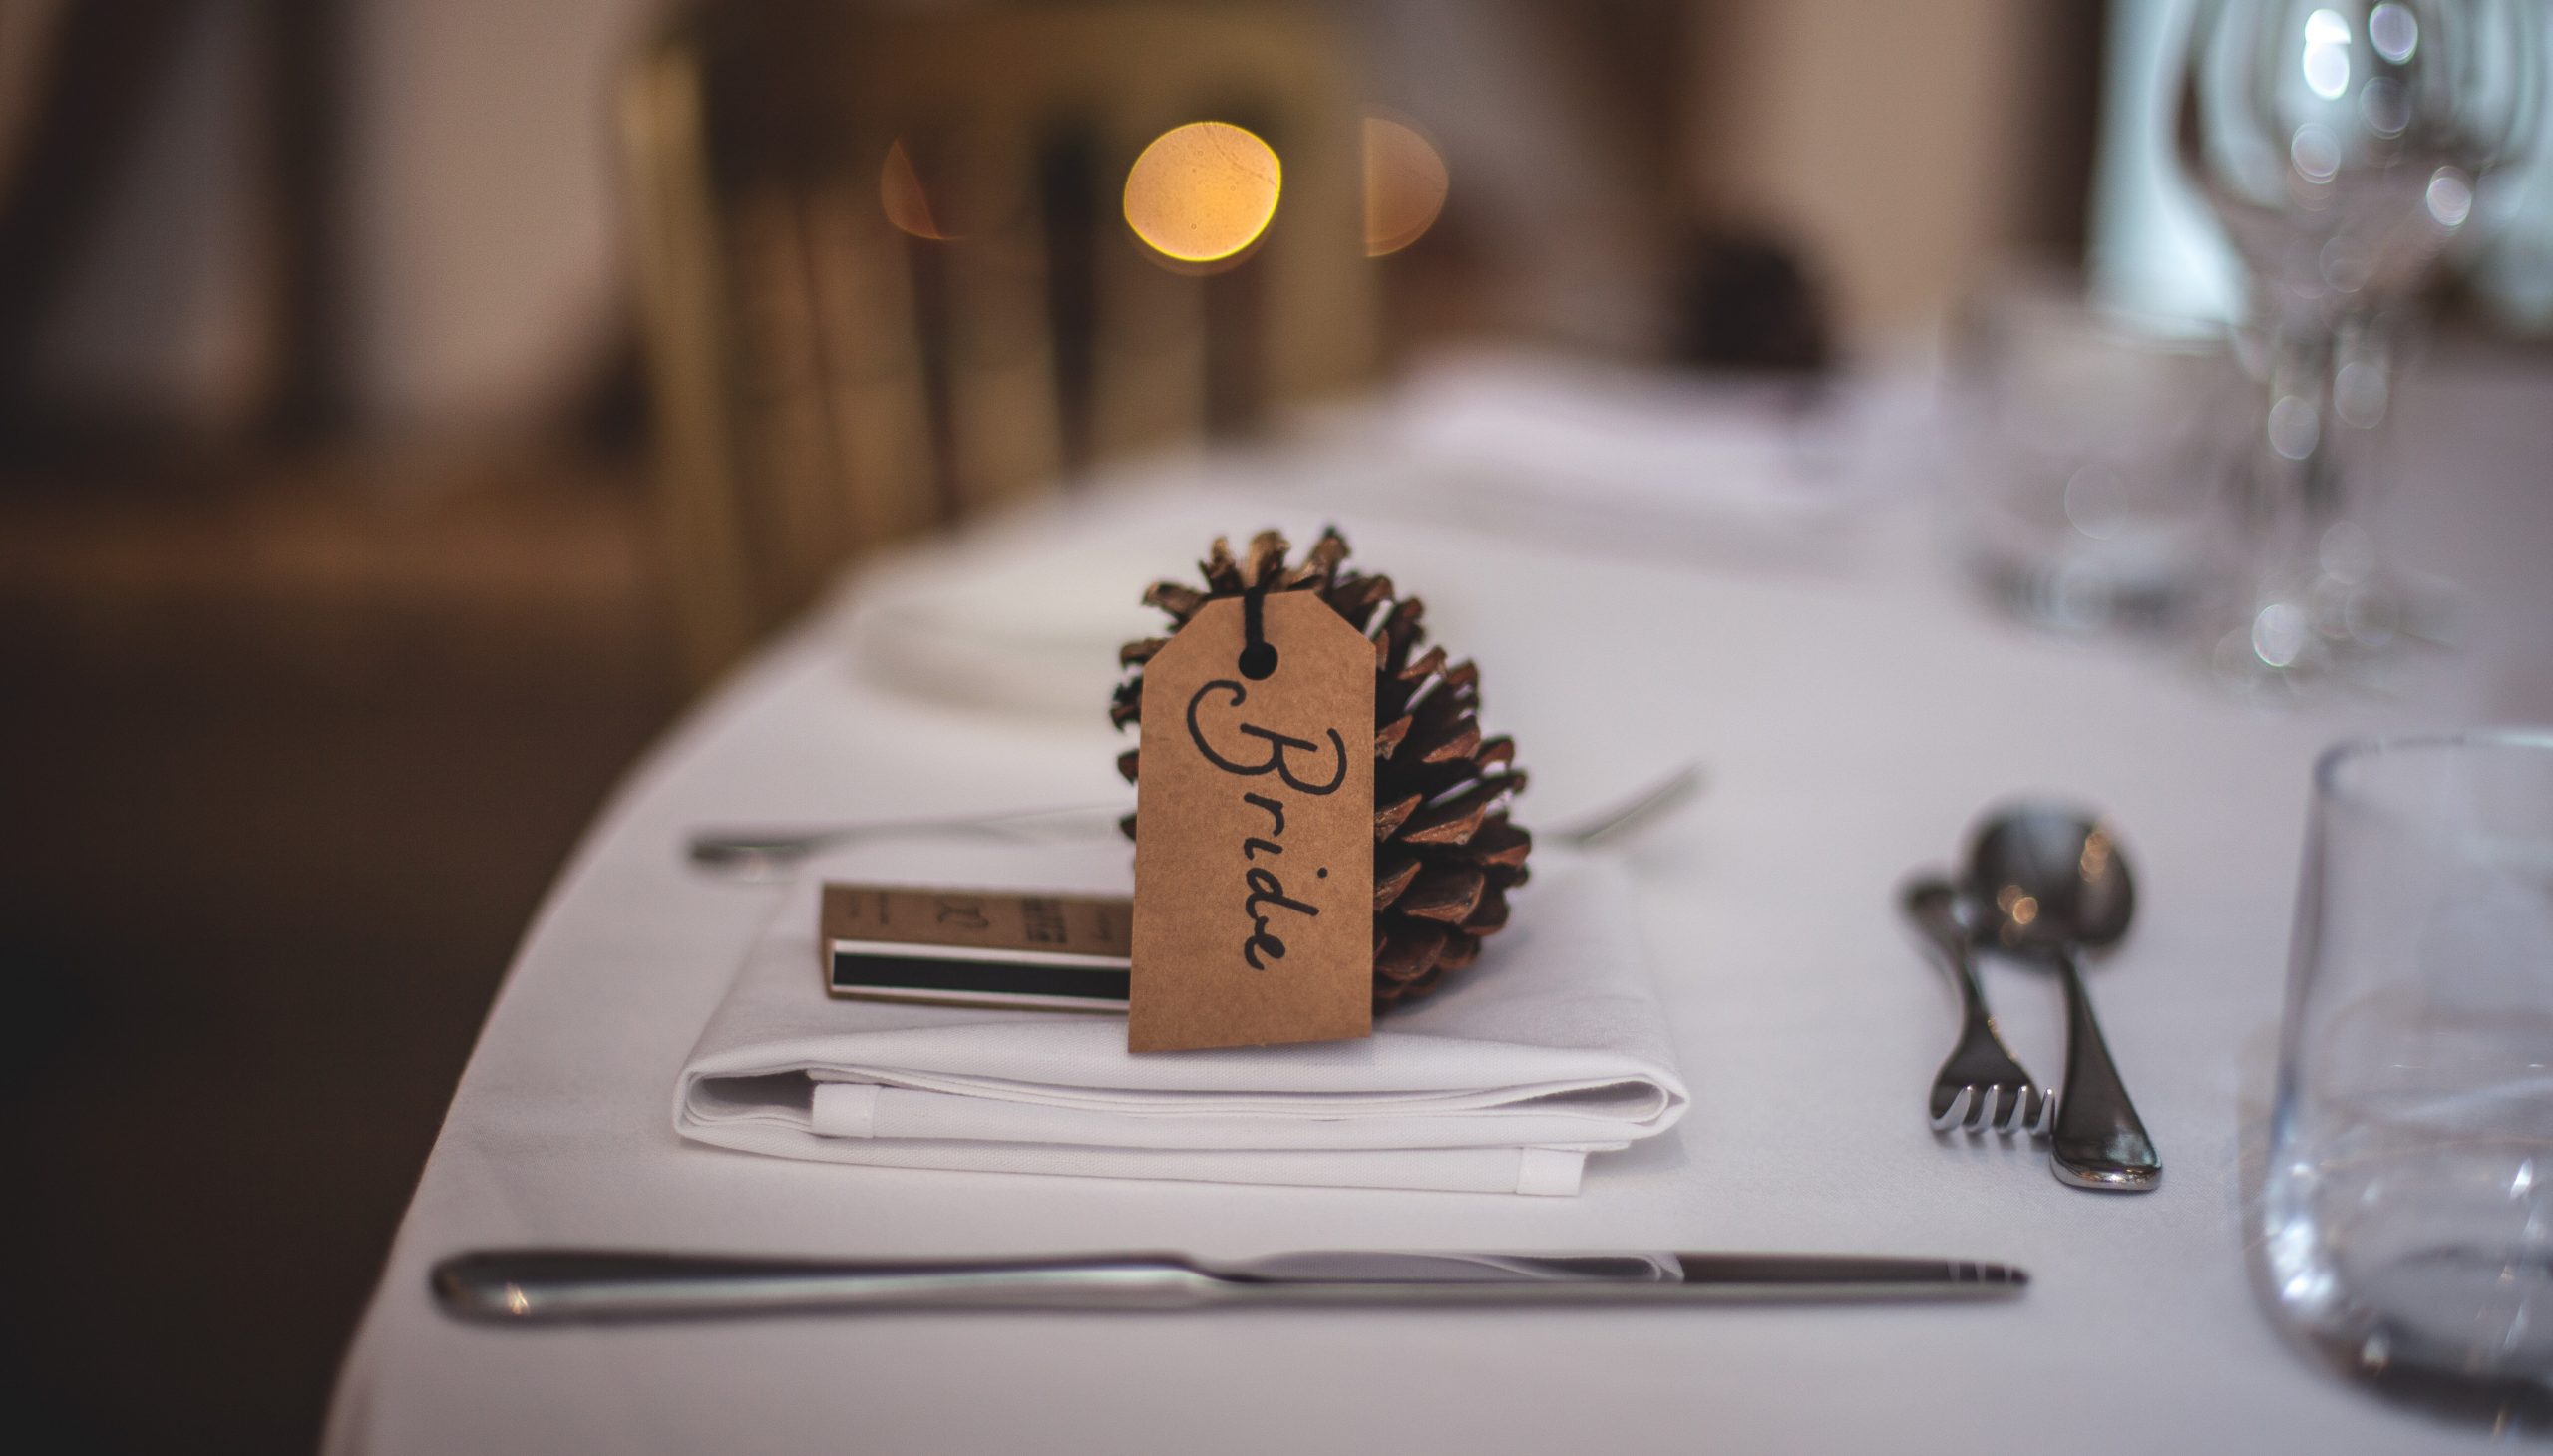 A themed place card at a wedding